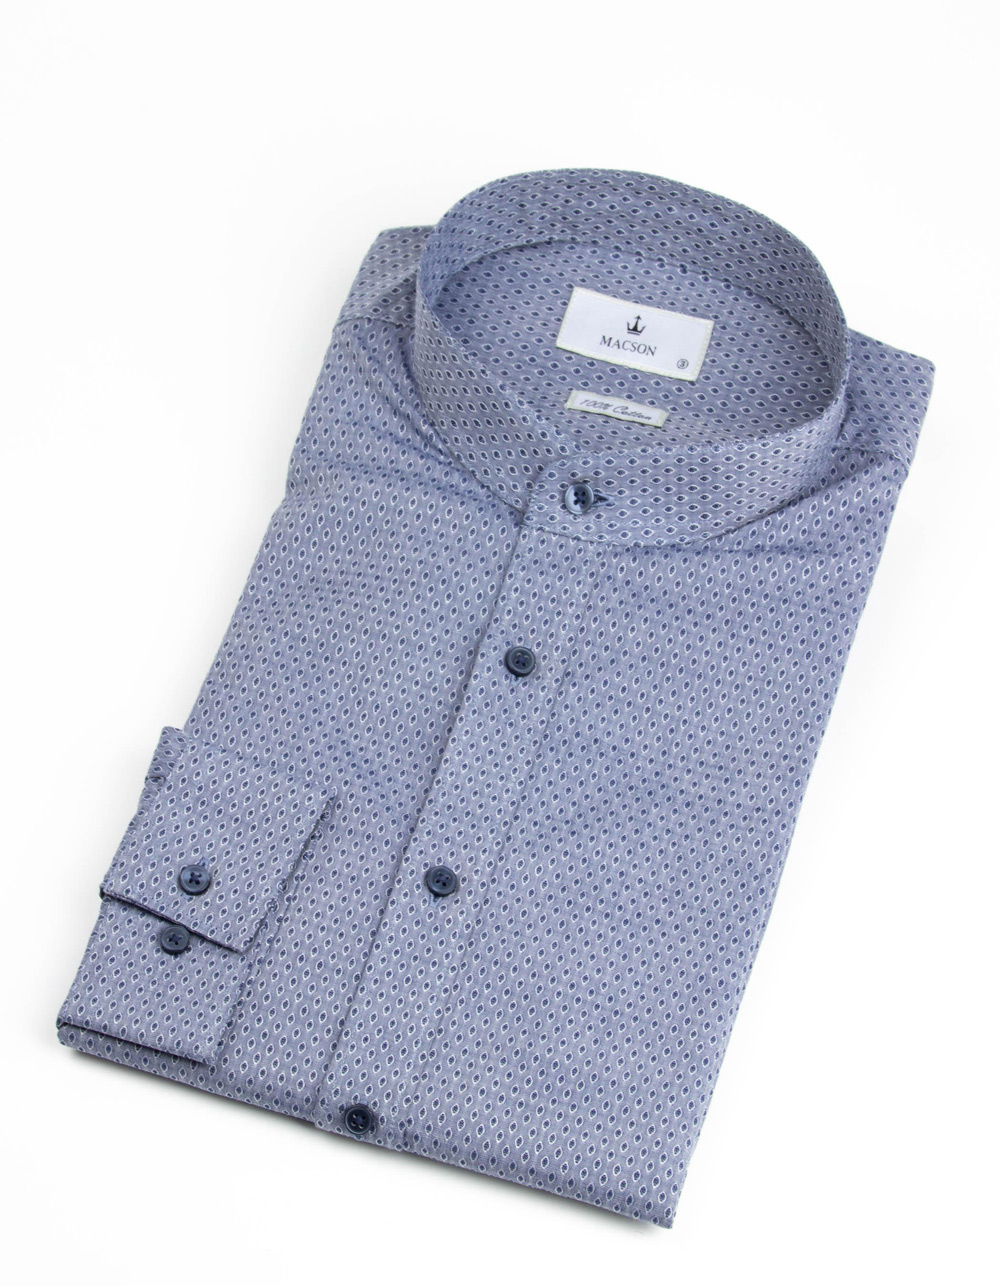 Grey Mao collar shirt with pattern